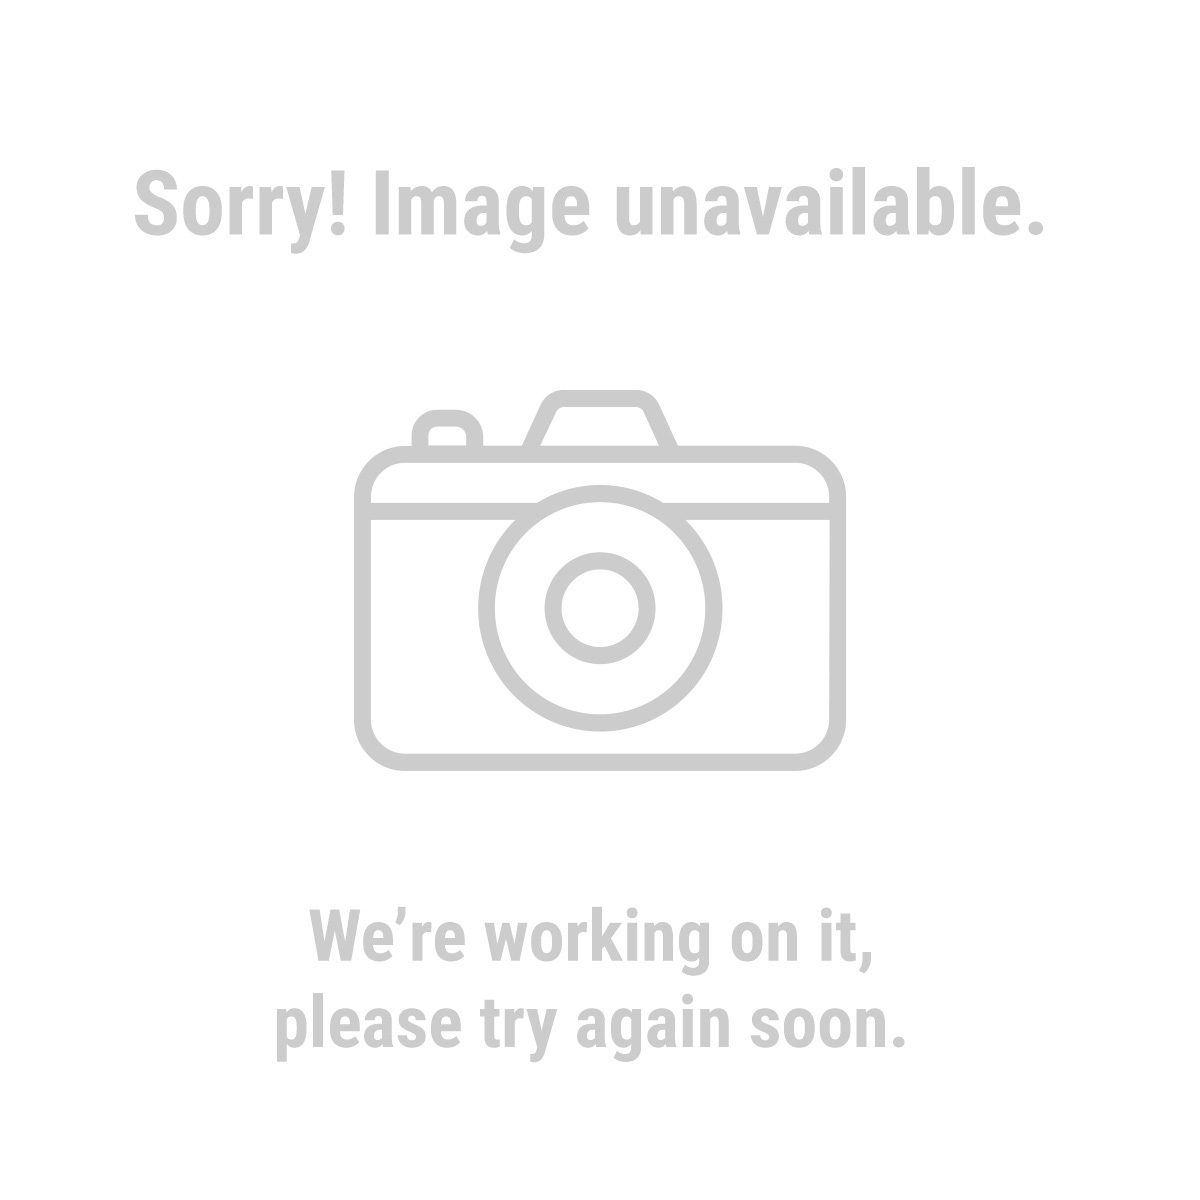 Drummond 63322 1/2 HP Submersible Sump Pump with Vertical Float 3800 GPH